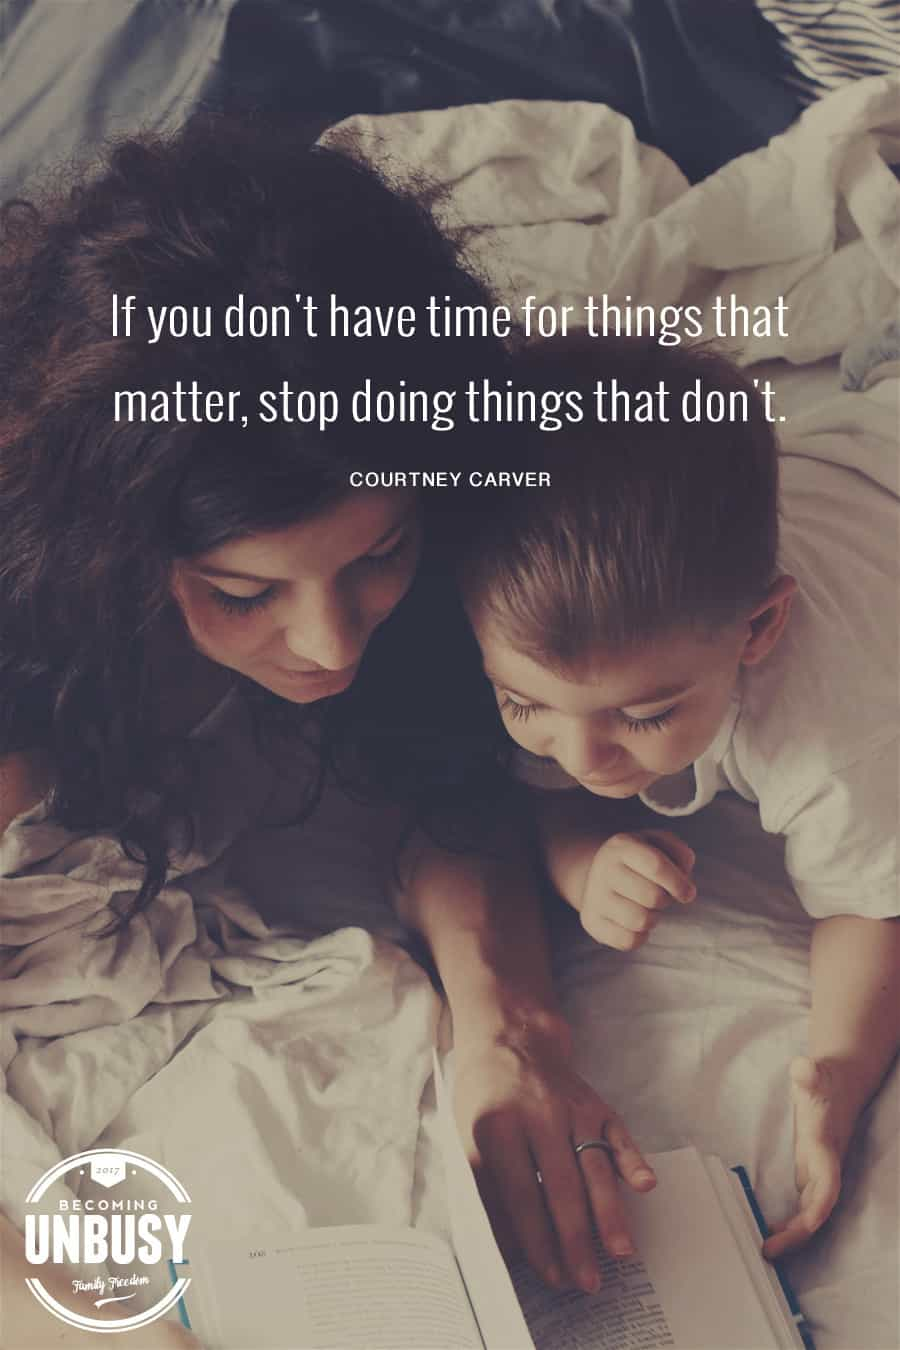 If you don't have time for things that matter, stop doing things that don't. -Courtney Carver #quote #becomingunbusy #modernparenting #positiveparenting #parentingquote #lifequote #intentionalliving #lifebydesign #slowliving *Loving this quote, post and site!